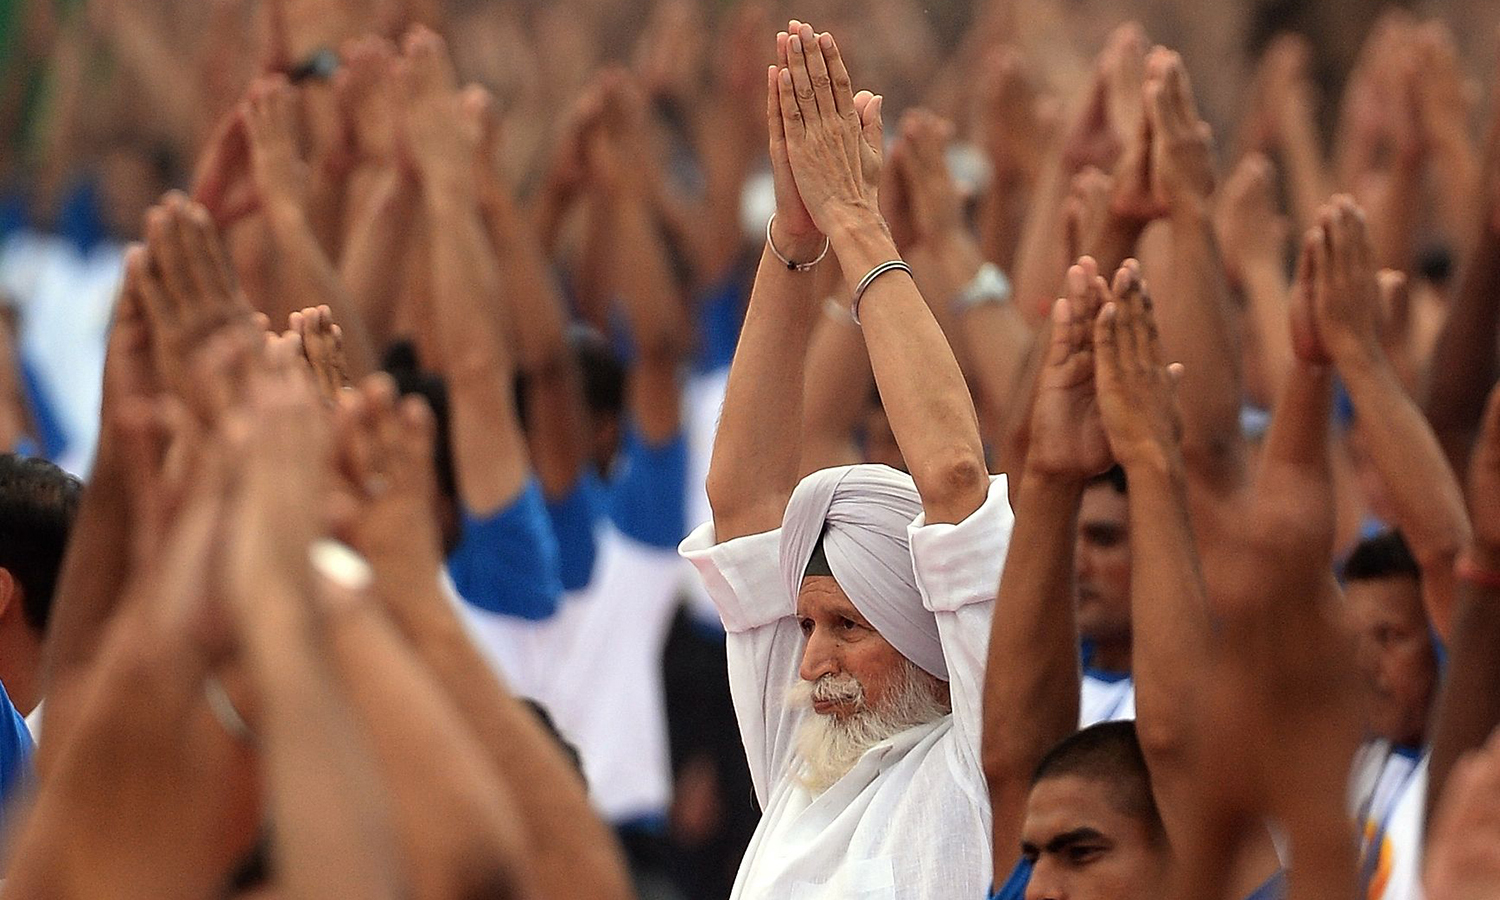 Indian yoga practitioners participate in a mass yoga session to mark the International Yoga Day at Capitol complex in Chandigarh. AFP